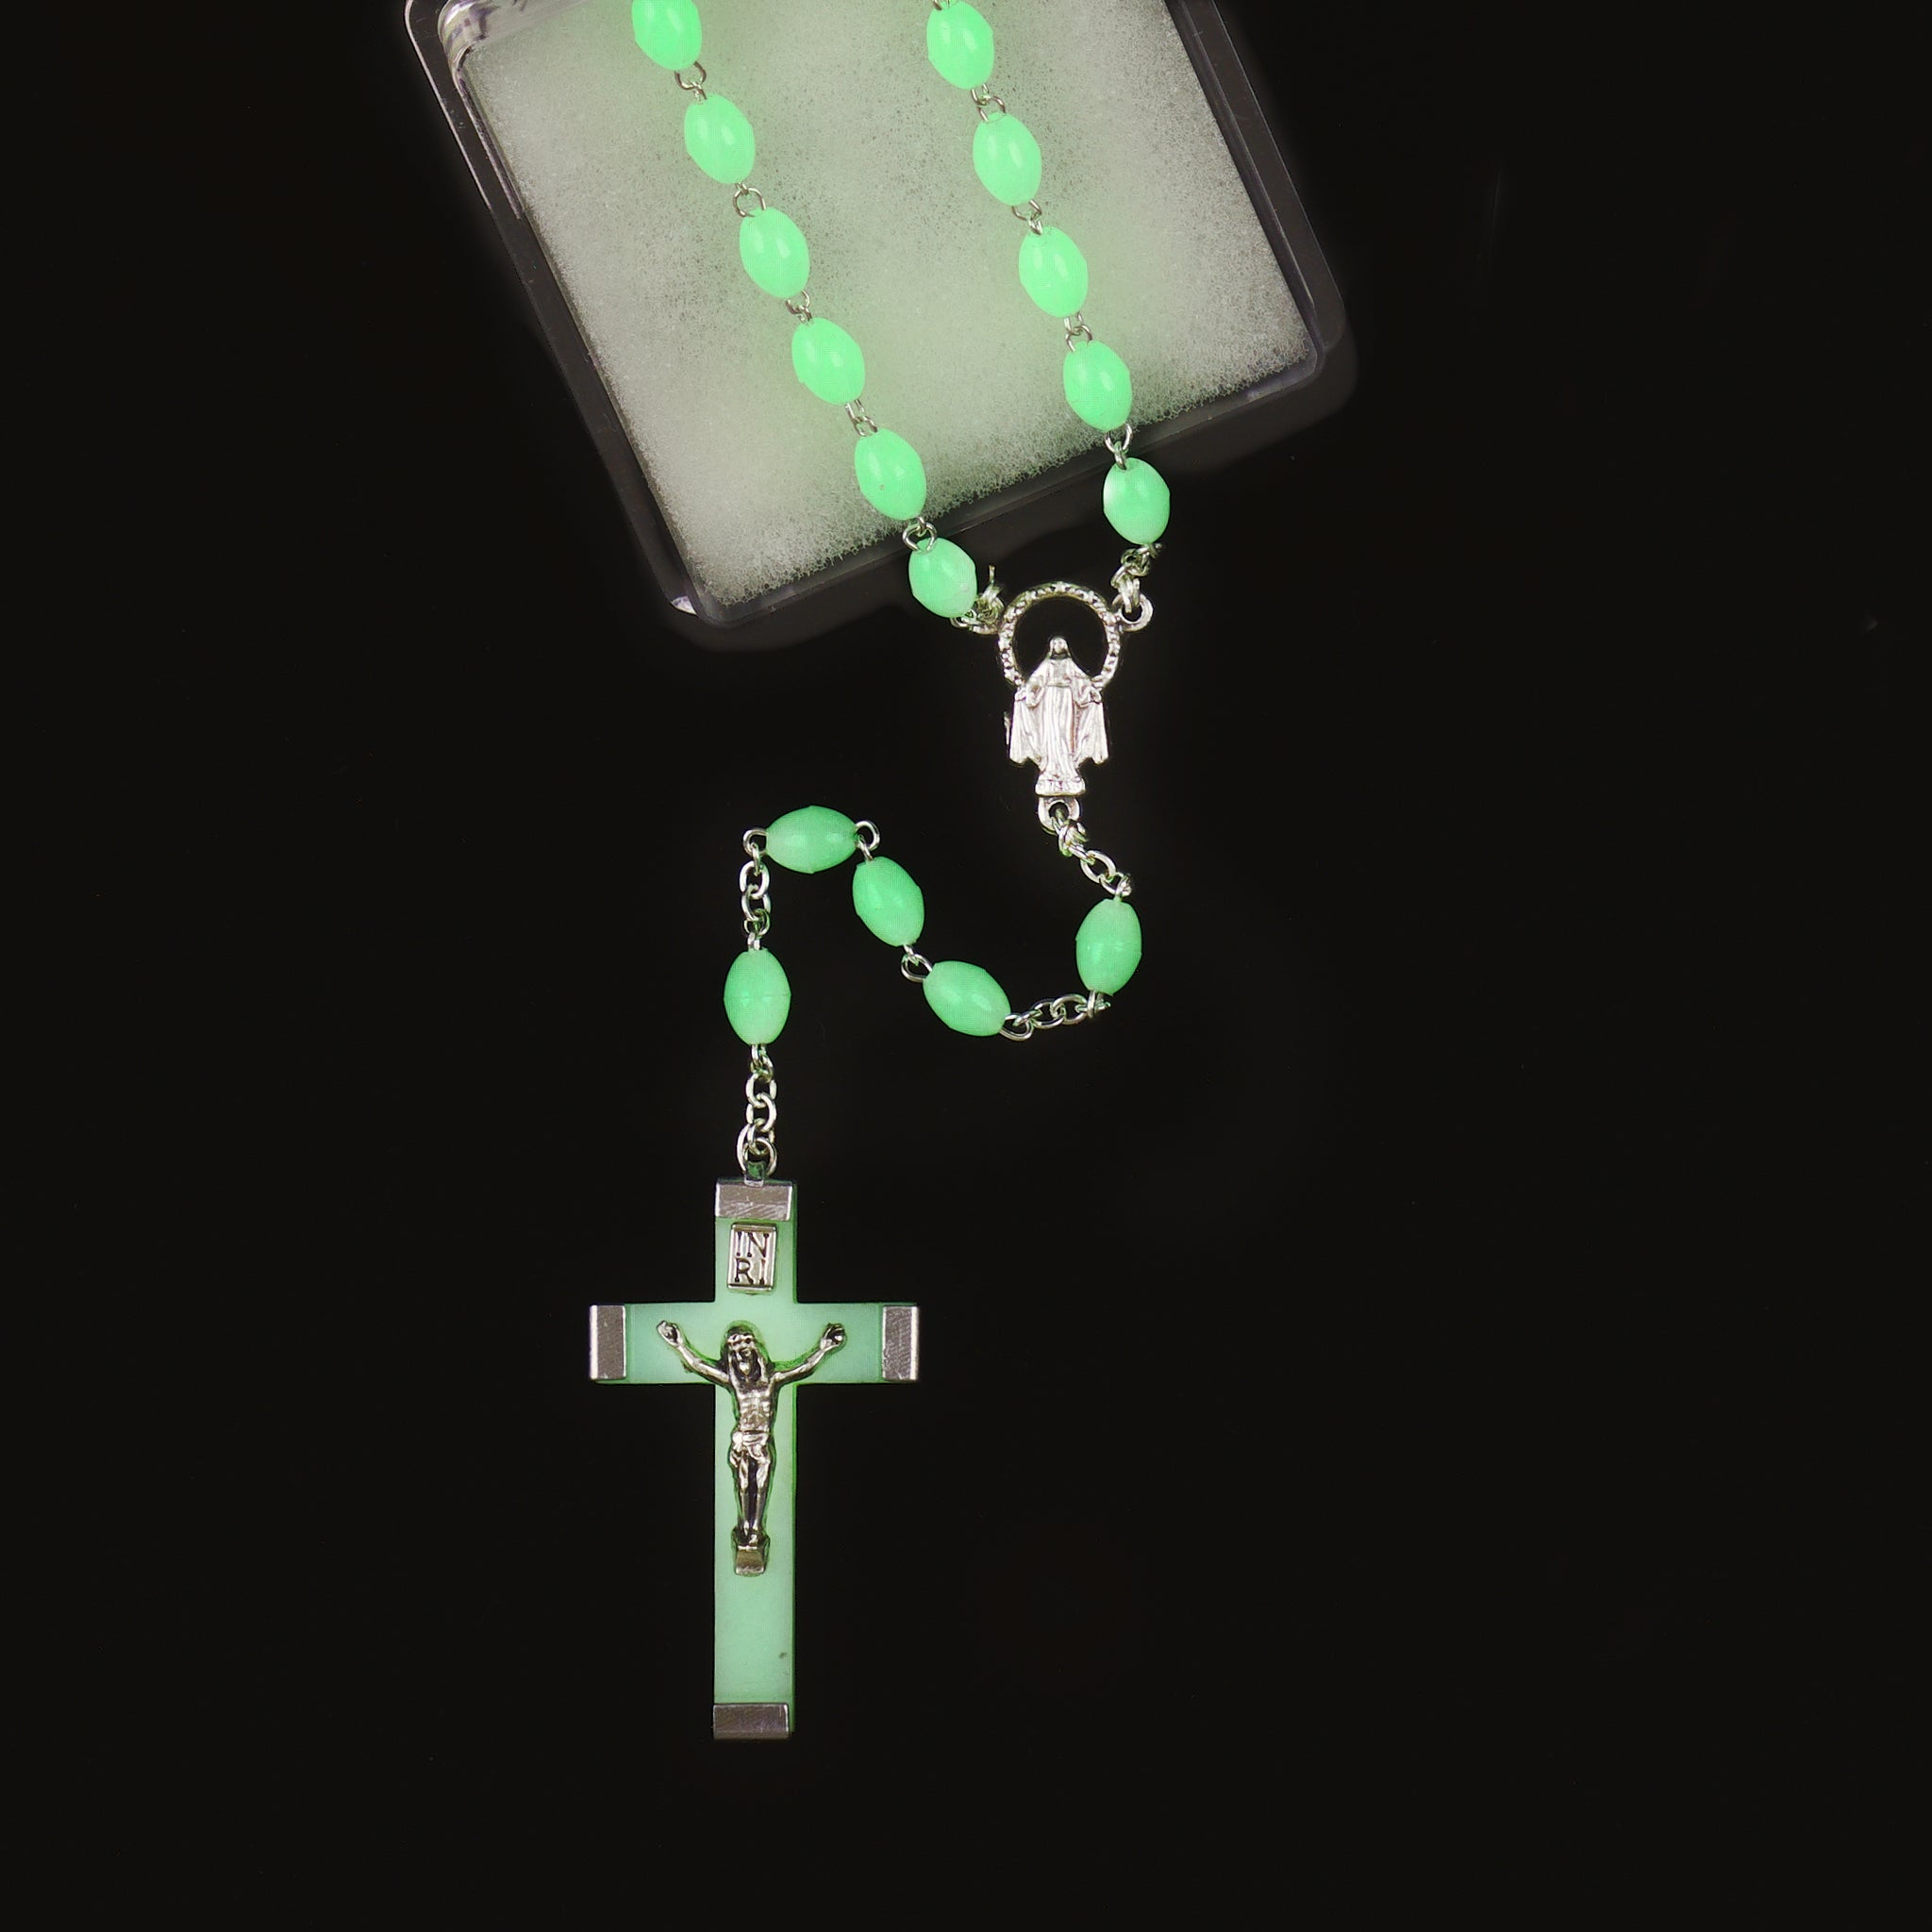 GLOW-IN-THE-DARK ROSARY (7mm)